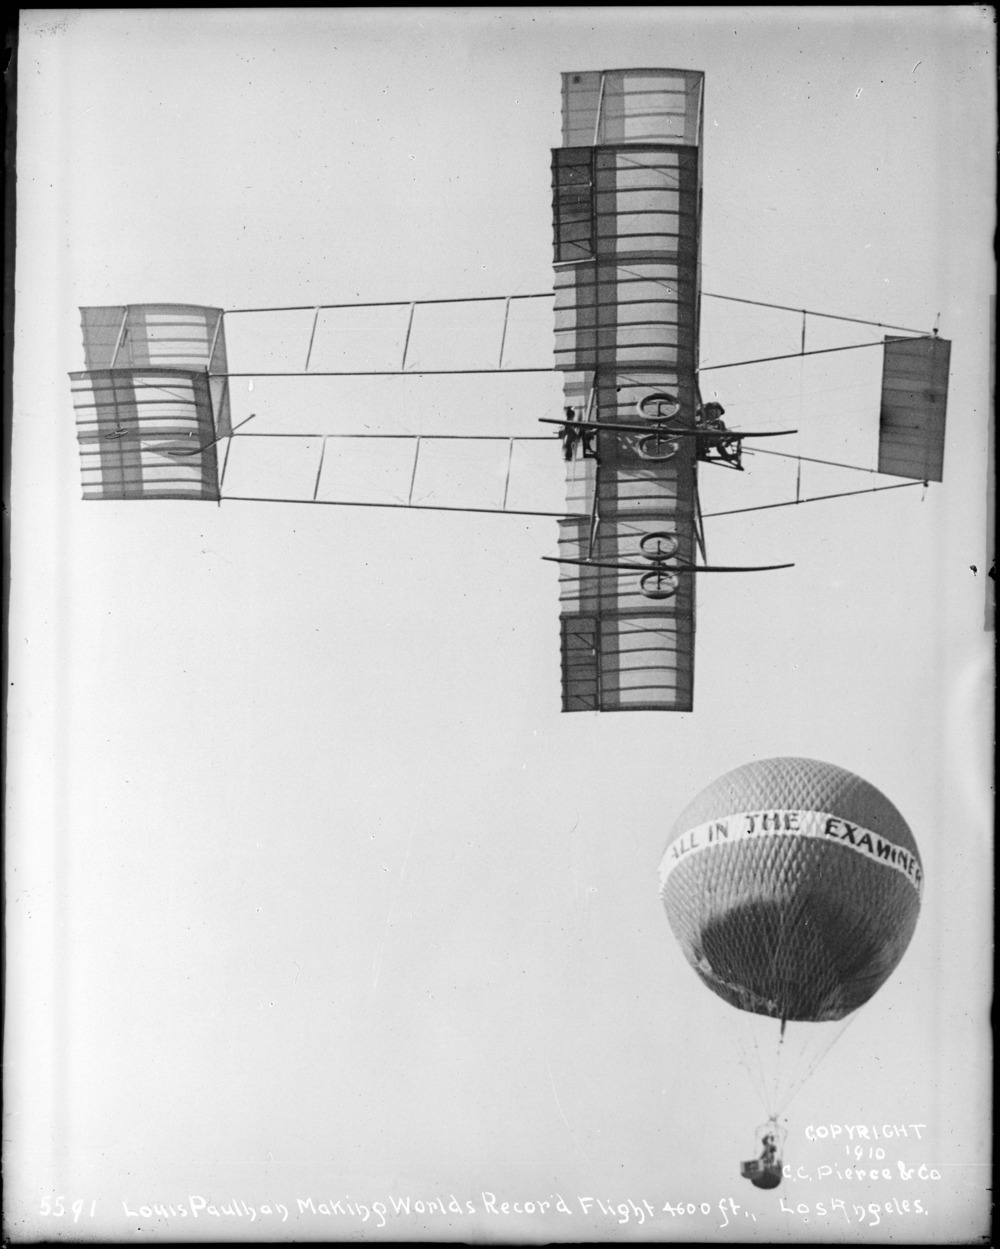 Louis Paulhan flying near a hot-air balloon in his Henry Farman biplane.  (USC Special Collection)